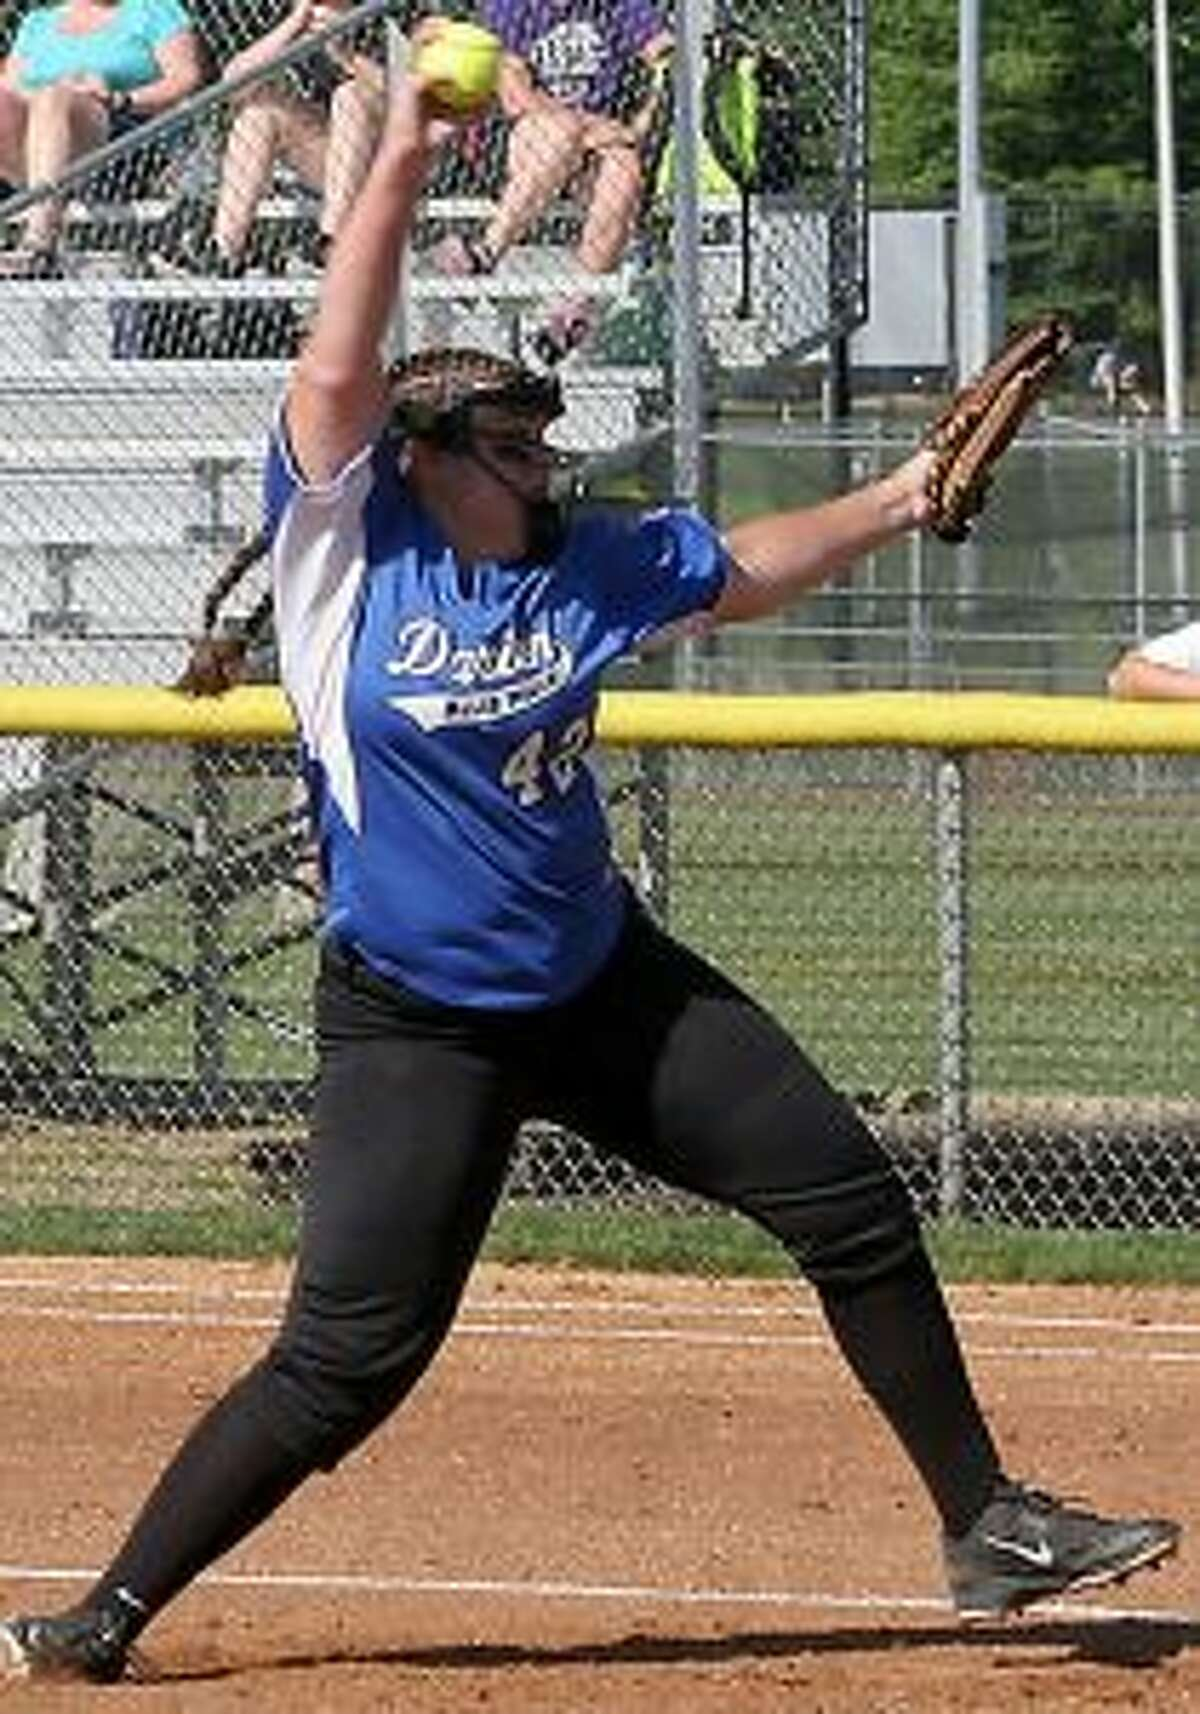 Darien High's Sophie Barbour tossed a two-hitter at Trumbull High. - Bill Bloxsom photos